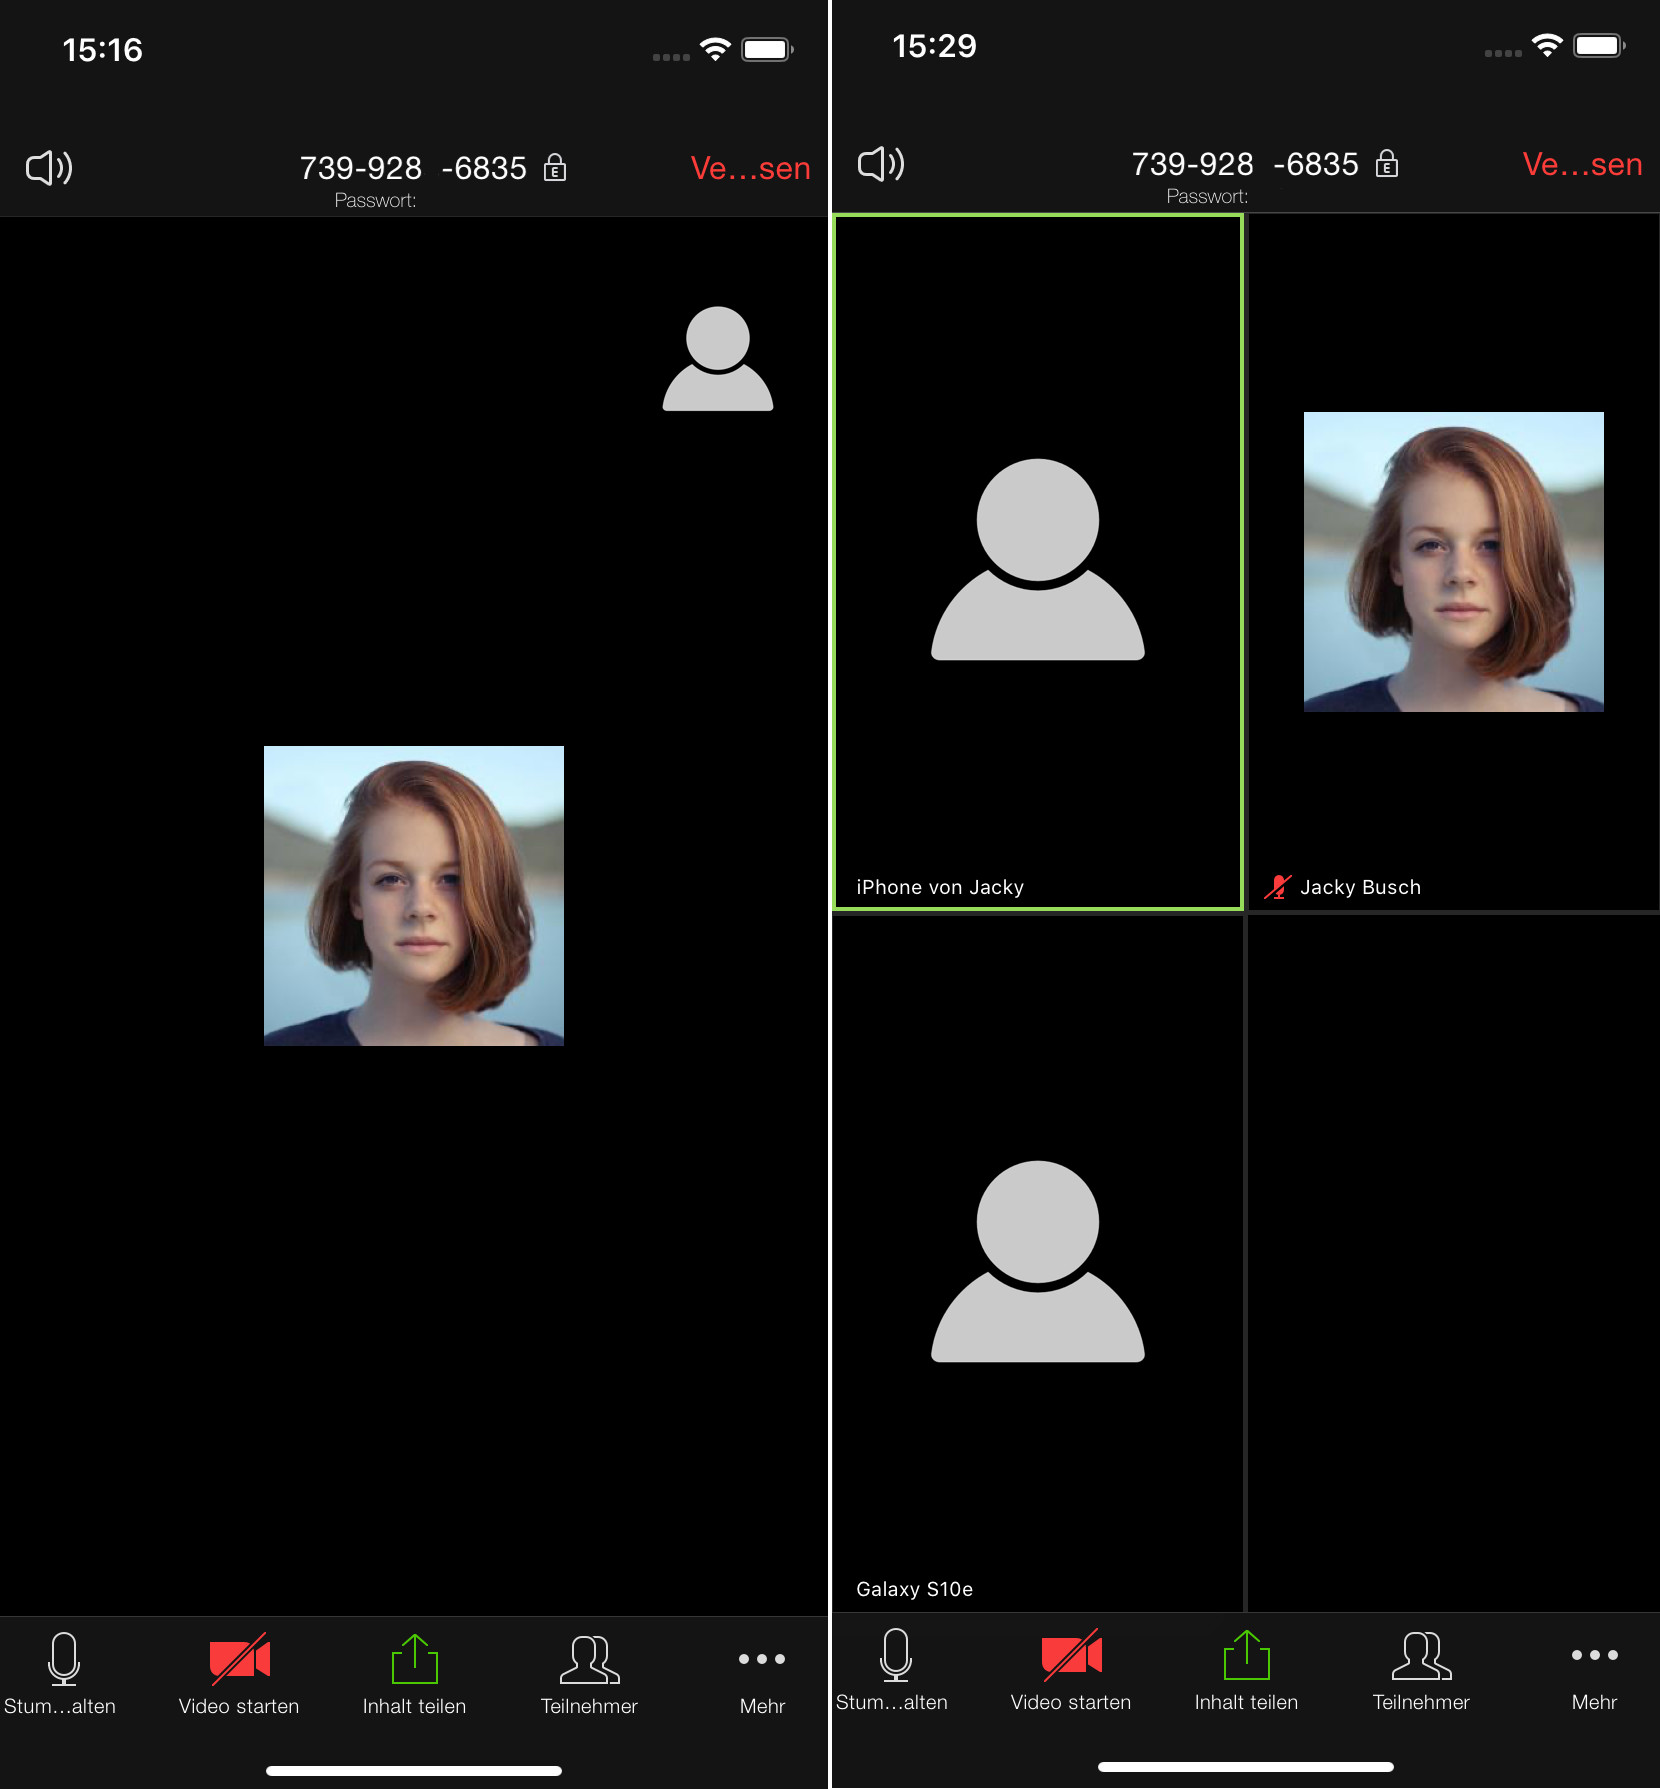 Screenshot 1 - Zoom Cloud Meetings (App für iPhone und iPad)